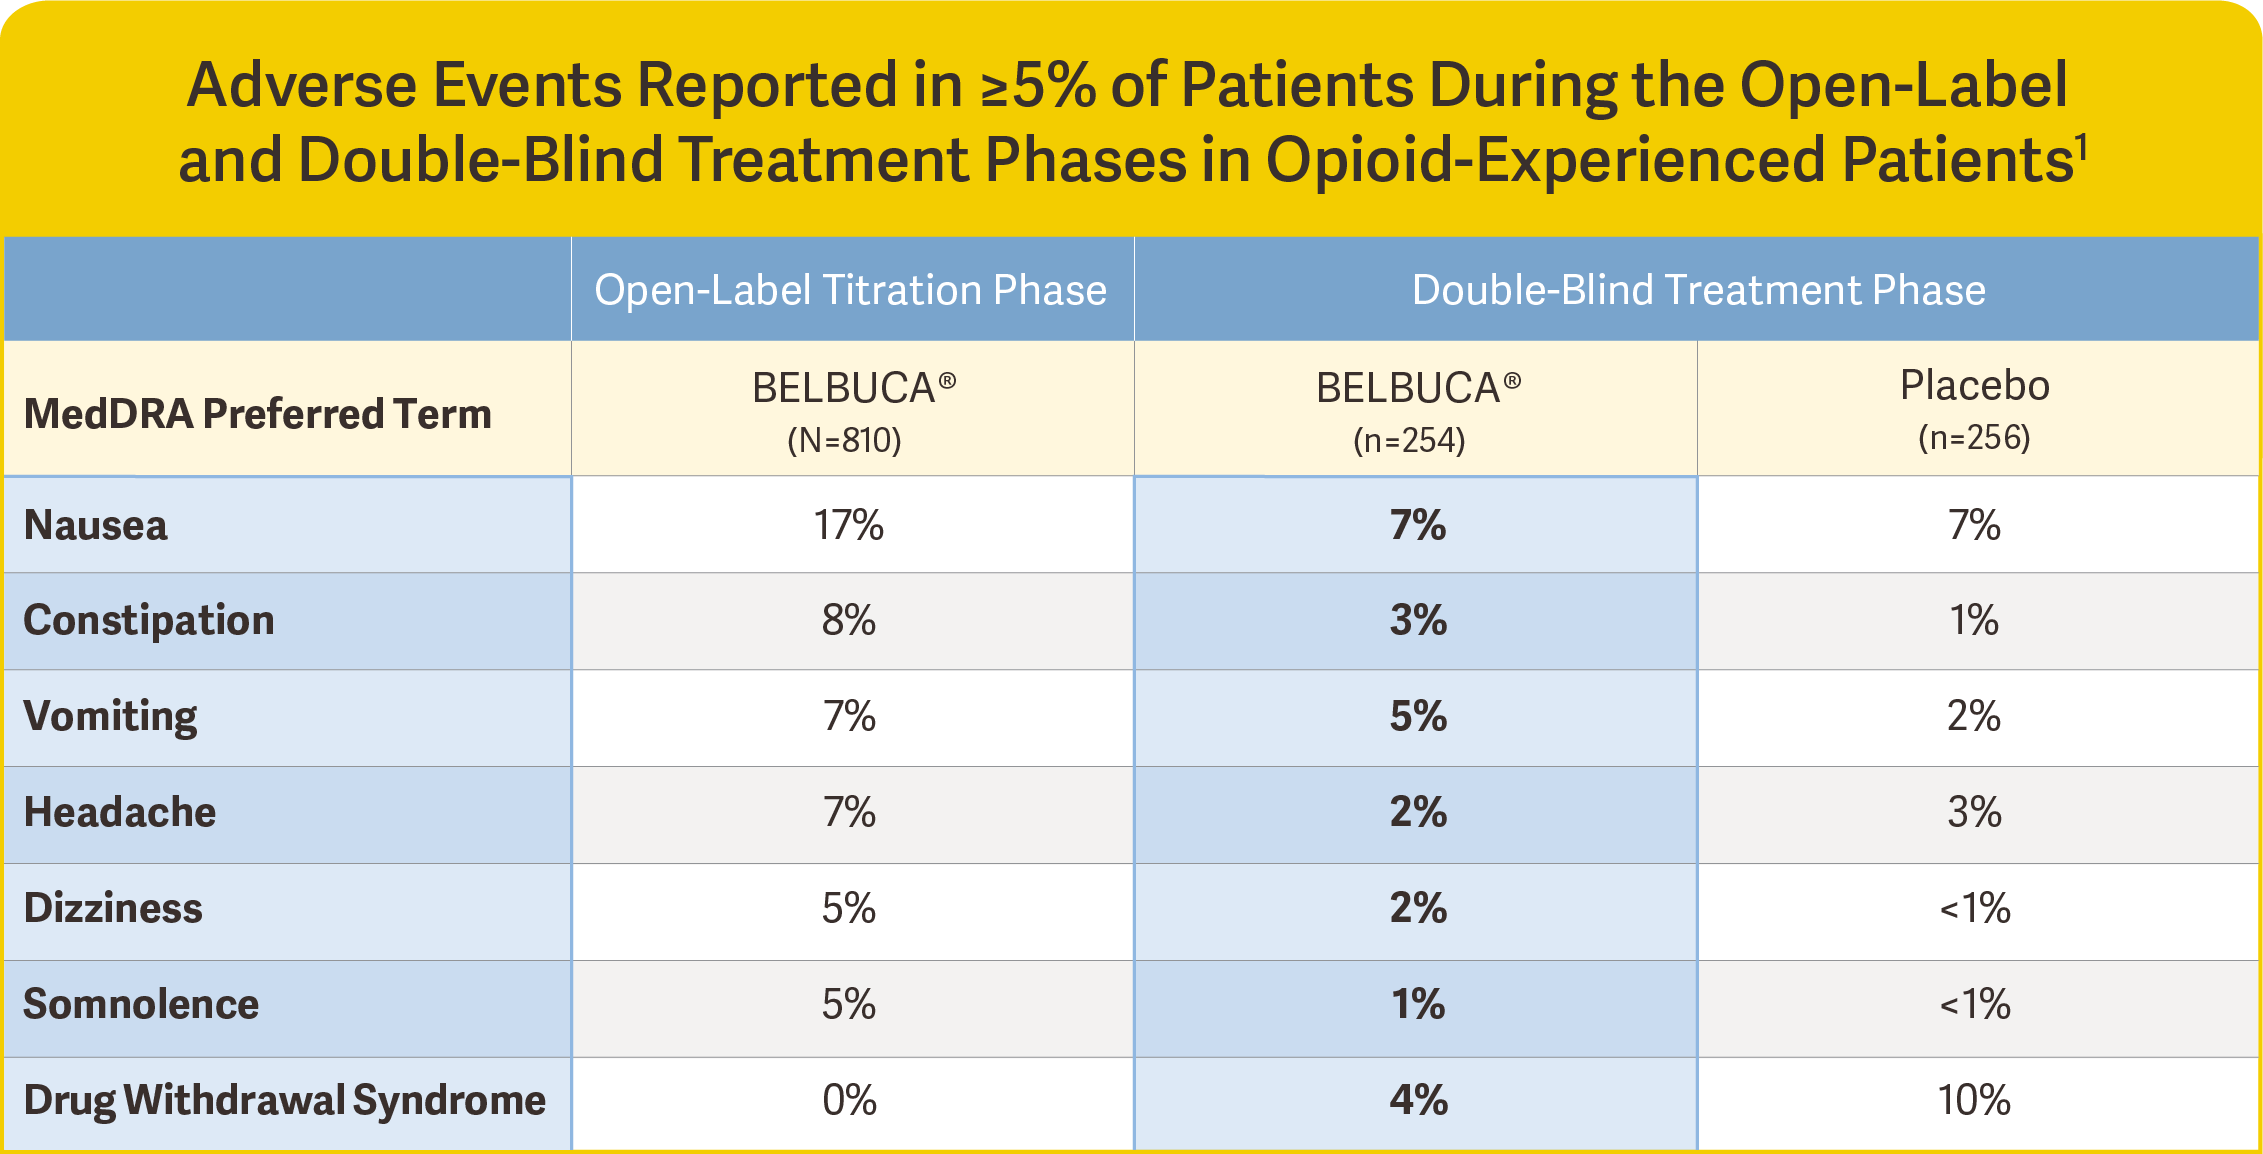 belbuca clinical data adverse events reported opioid-experienced patients